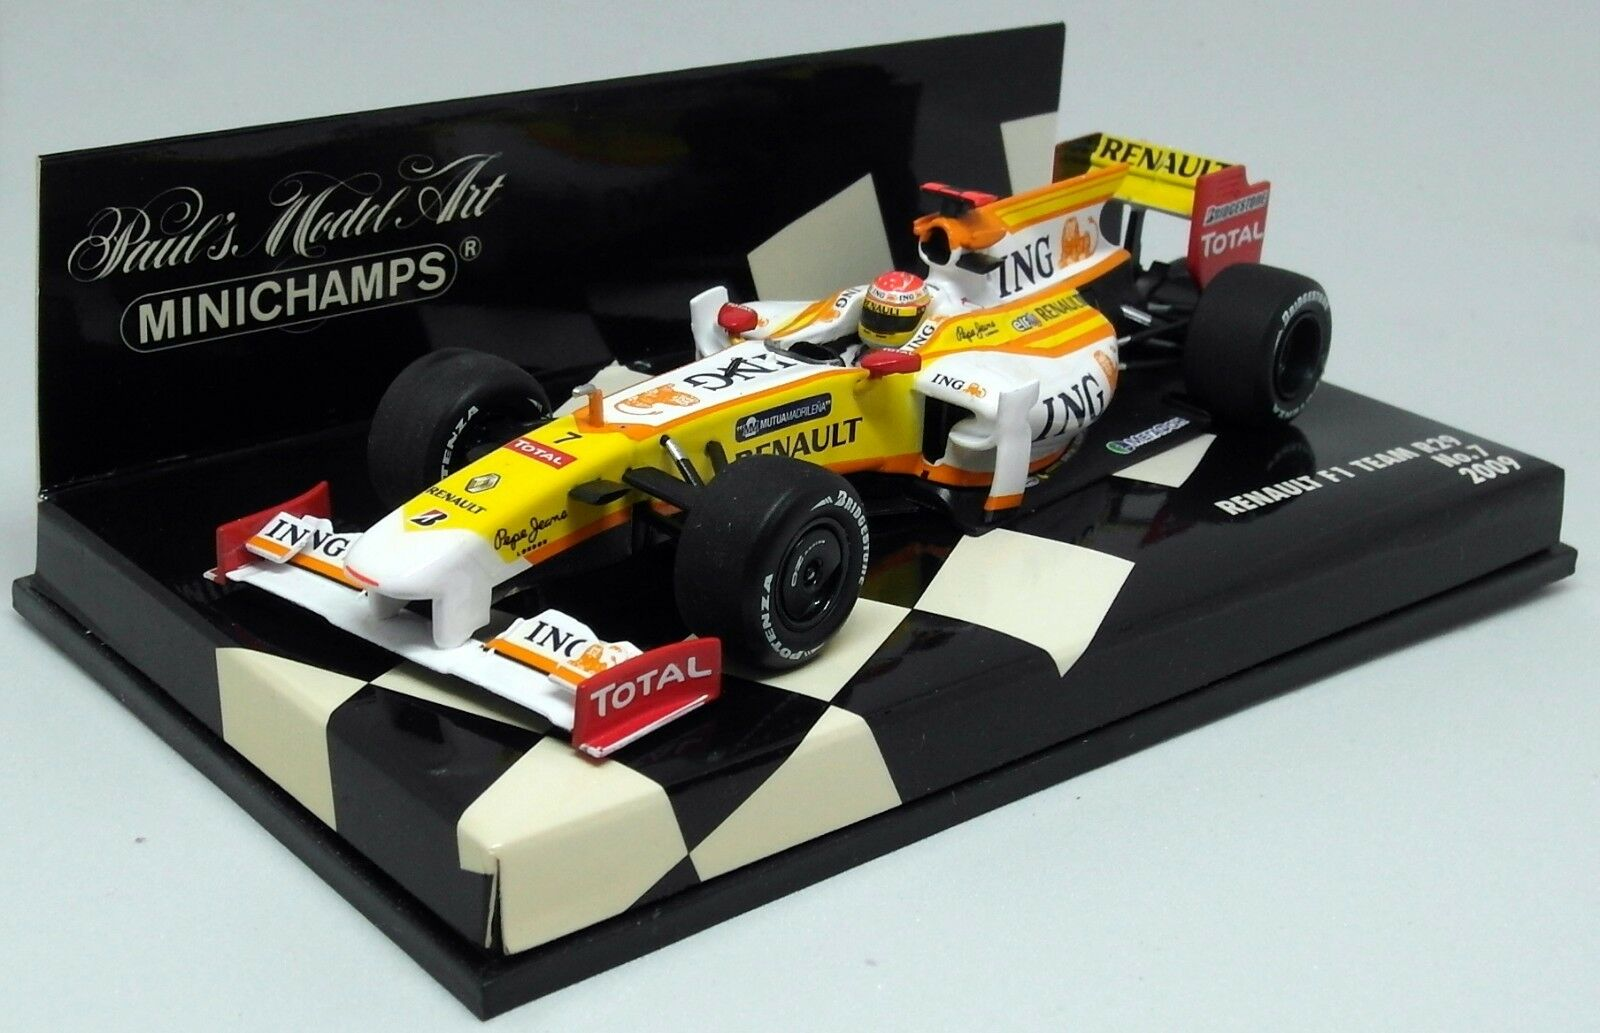 MINICHAMPS 1 43 Scale 400 090007 renault team R29 2009 Alonso DIECAST MODEL